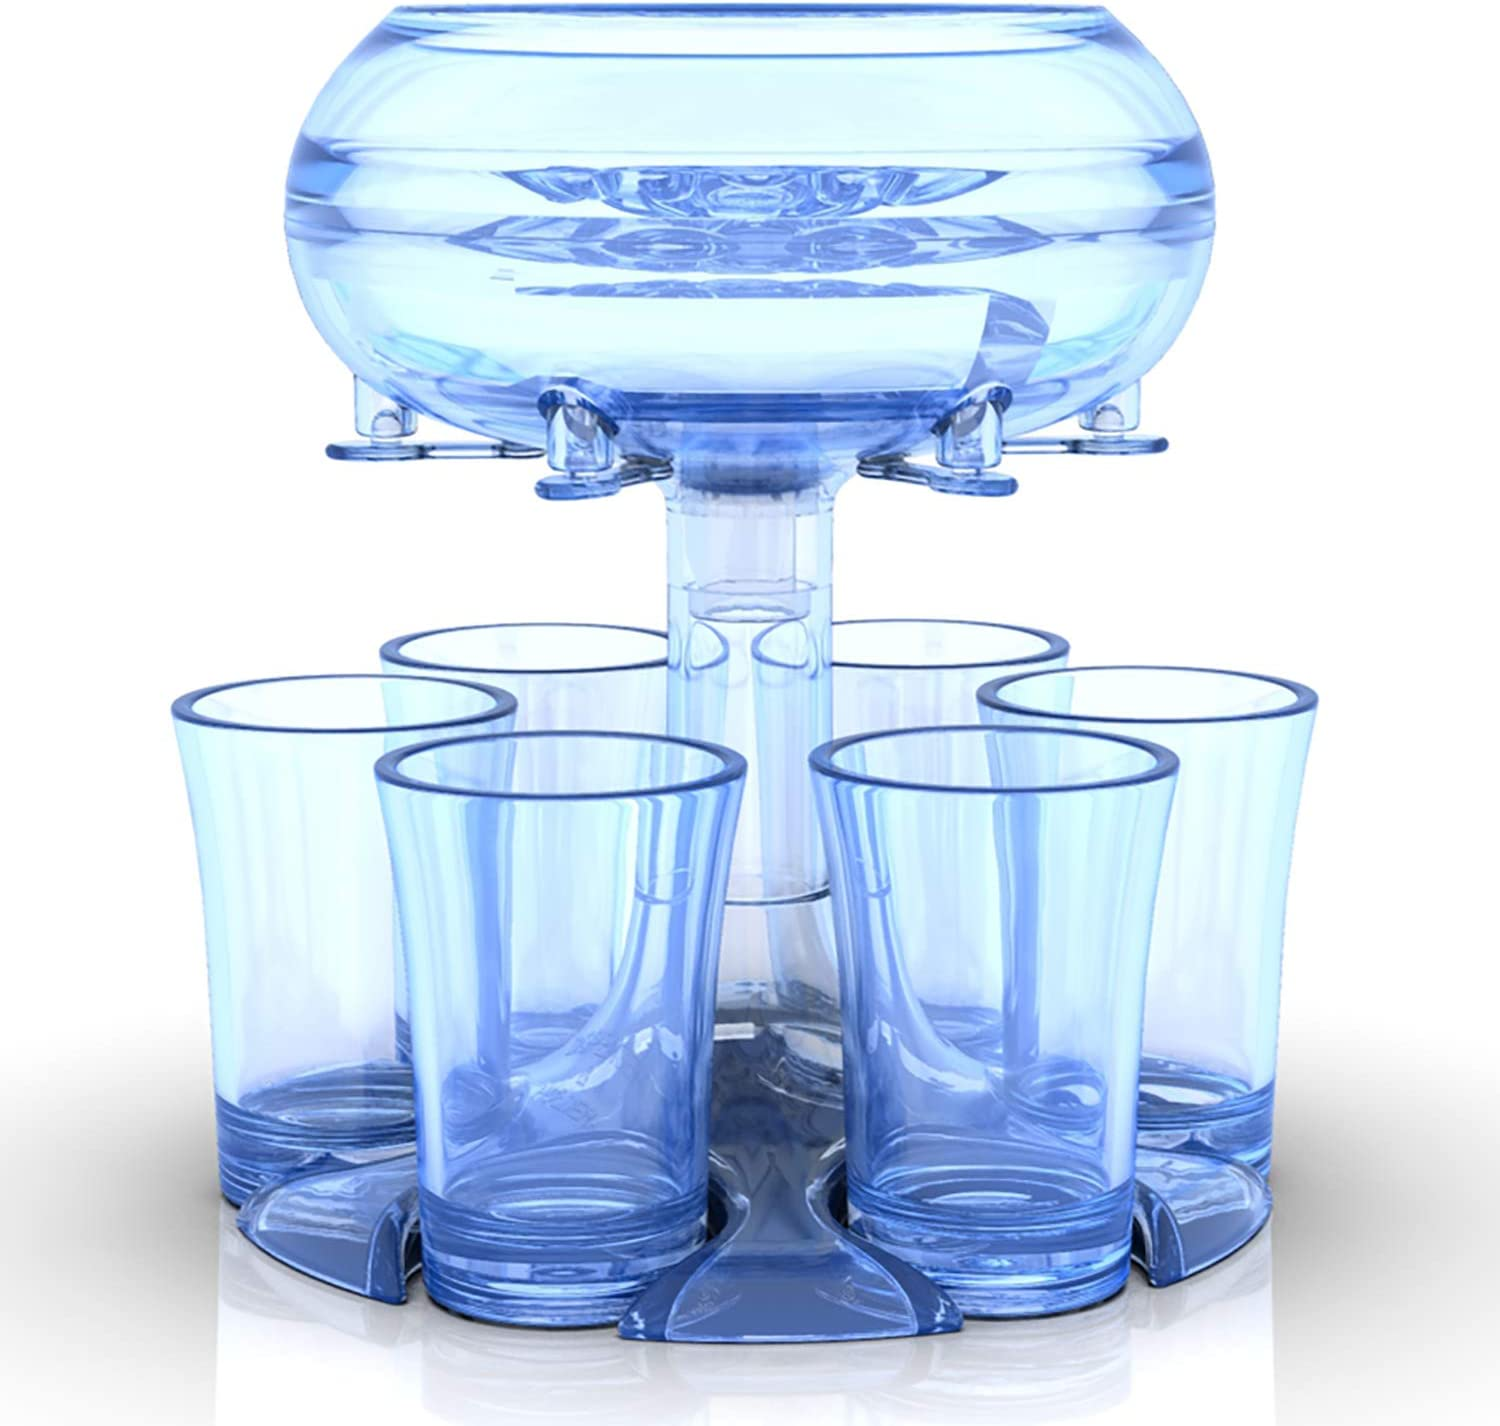 6 Shot Glass Dispenser And Holder,Shots Dispenser for Filling Liquids,Game Dice,Drinking Games Wine Dispenser For Weekend Party Cocktail Parties,Sky Blue